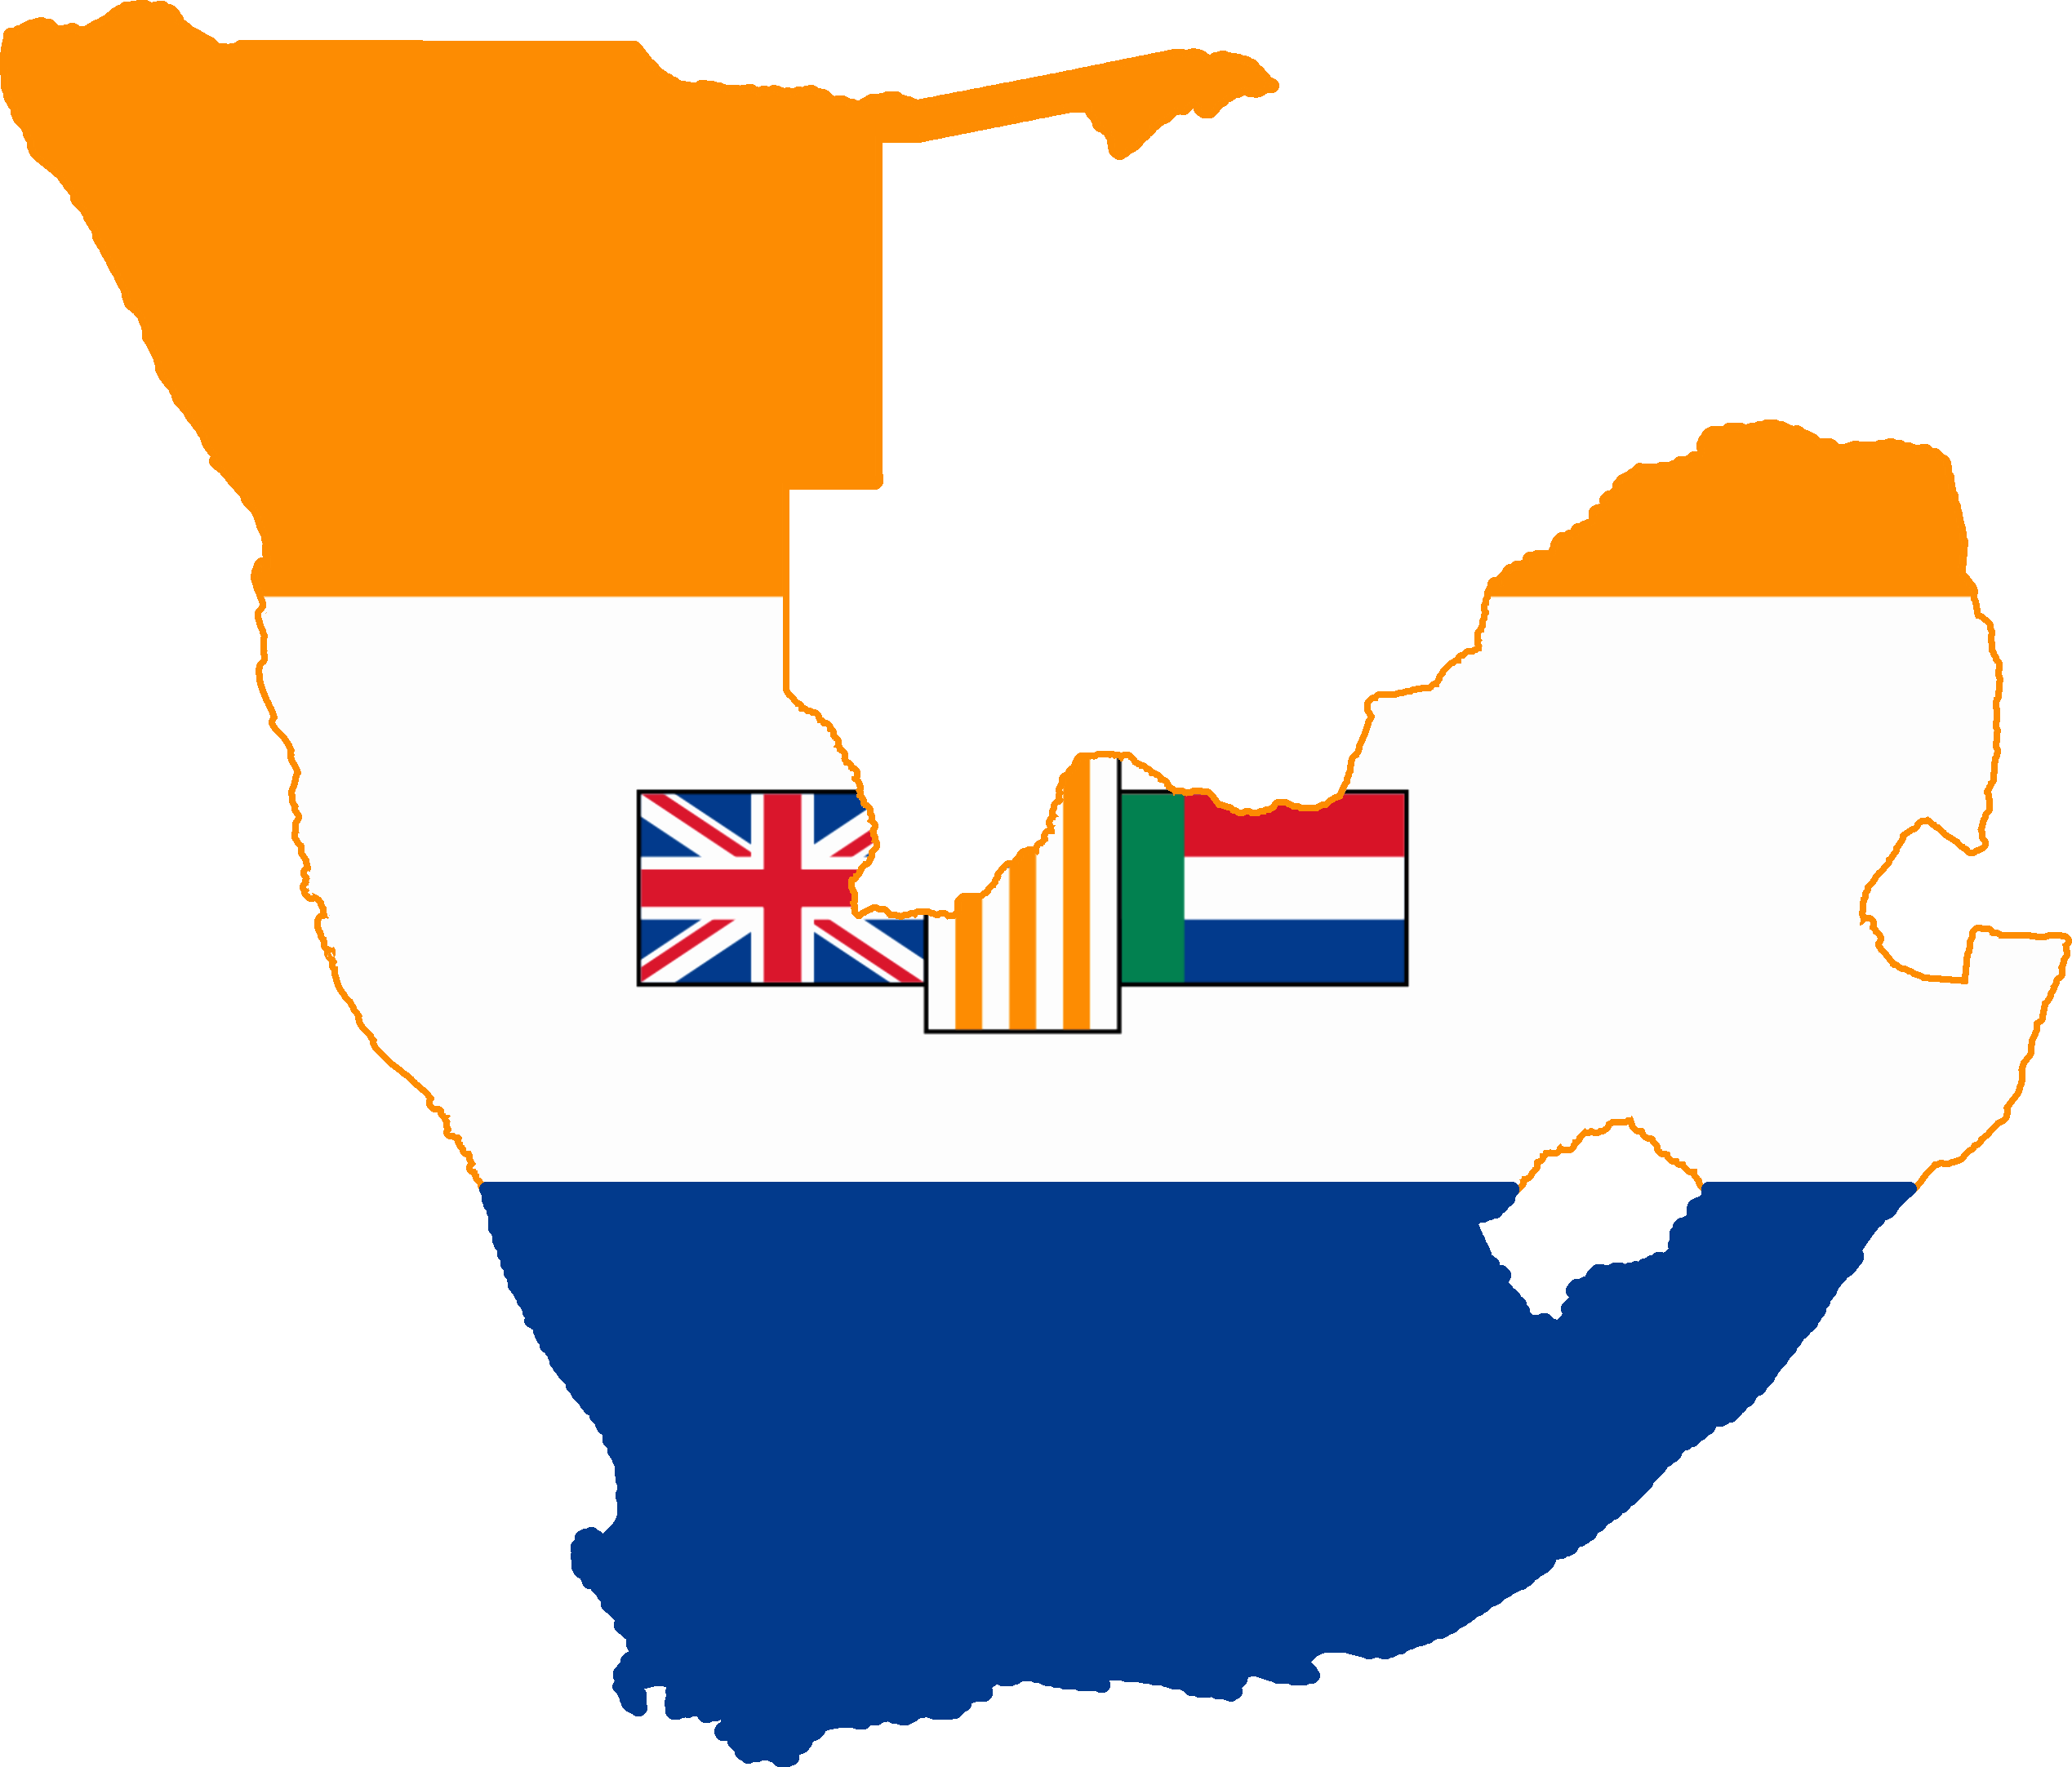 Africa clipart africa west. File south flag map